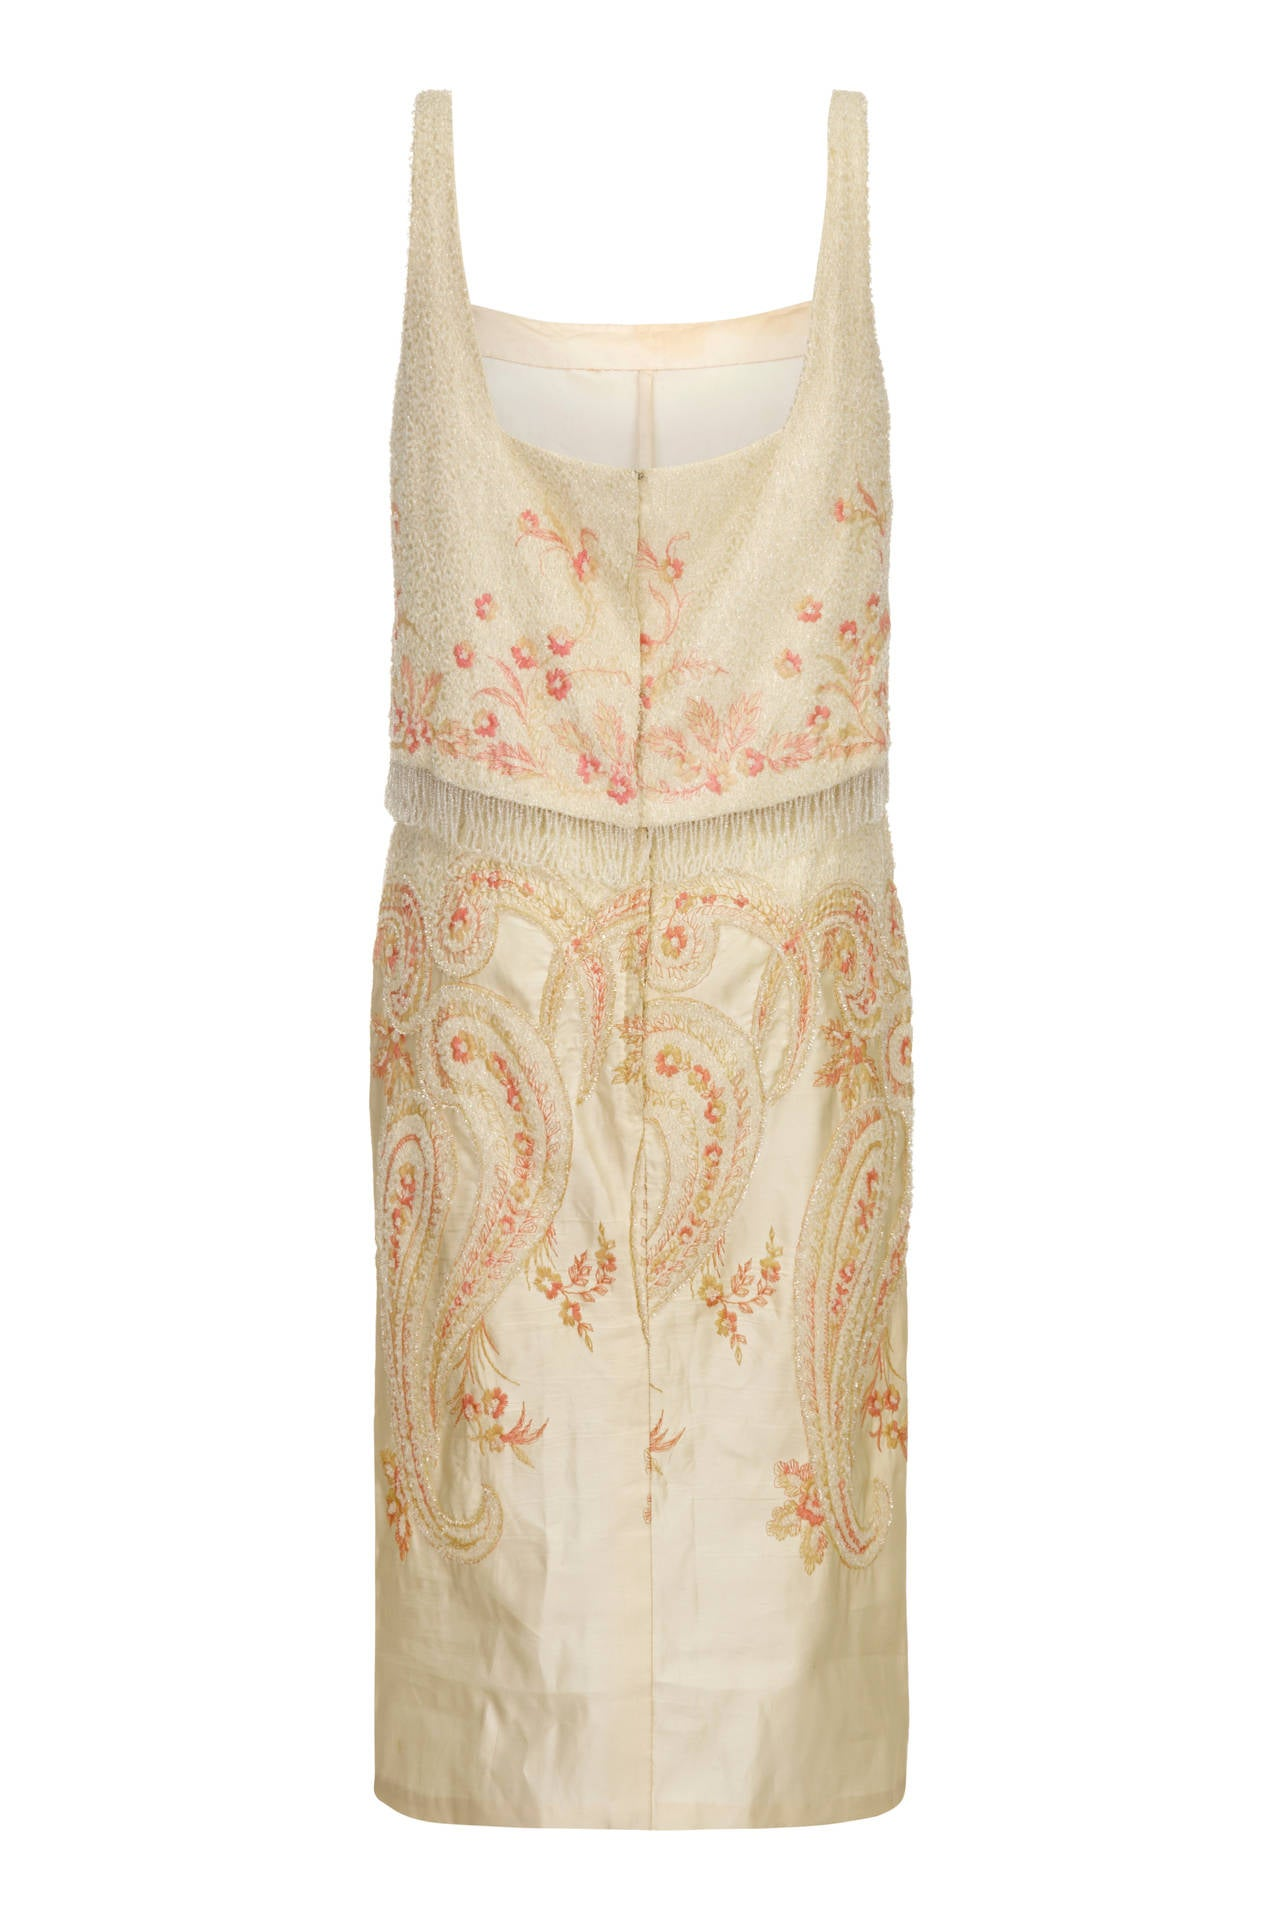 1960s Cream and Peach Beaded Cocktail Dress 2